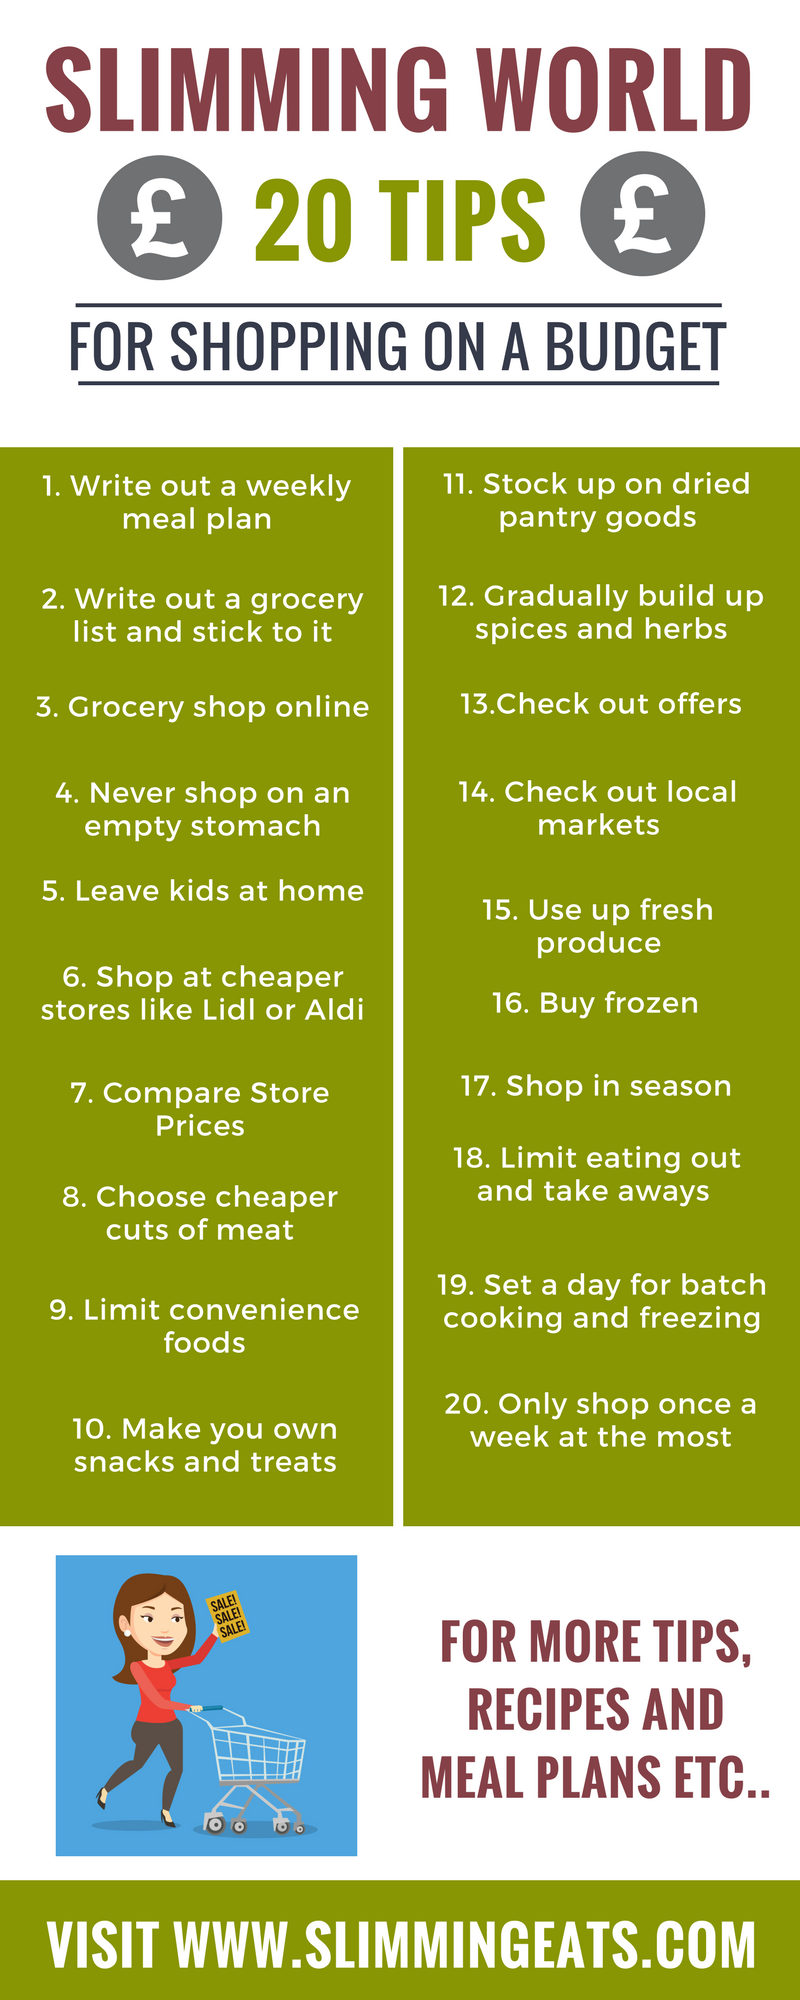 Slimming Eats - 20 Tips for Shopping on a Budget when following Slimming World